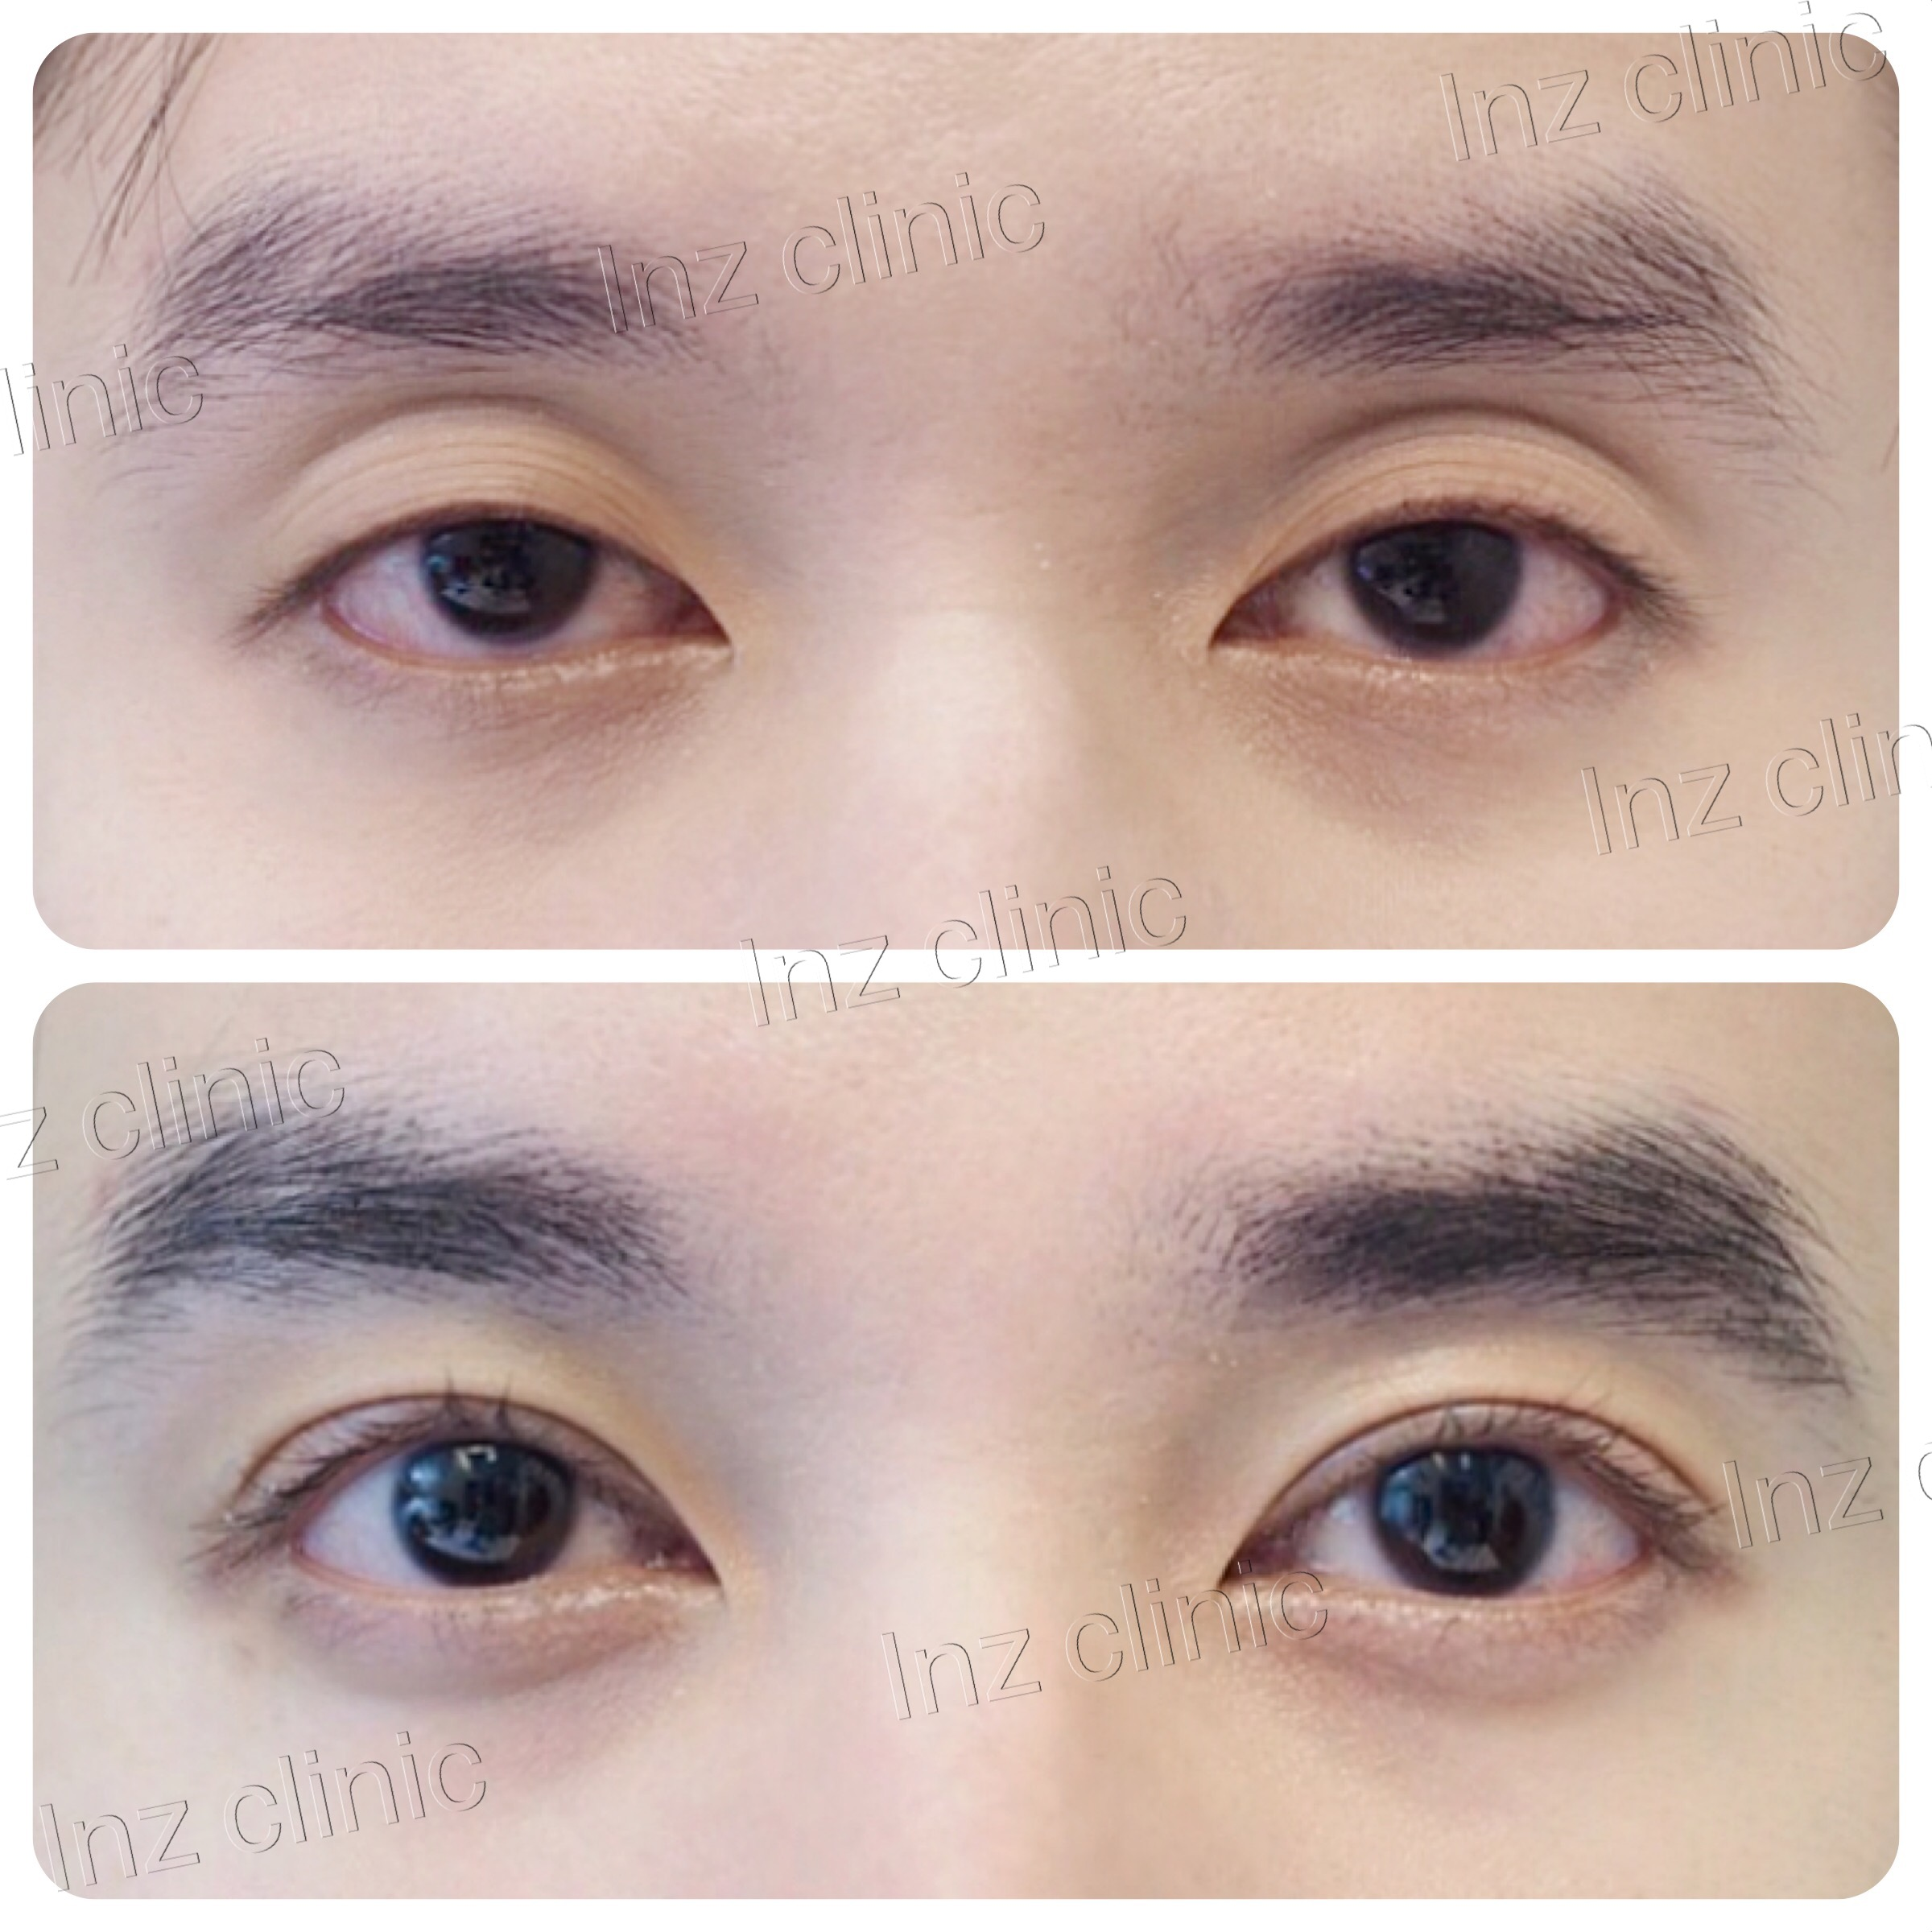 Current methods of double eyelid surgery, pros & cons - Inz-clinic